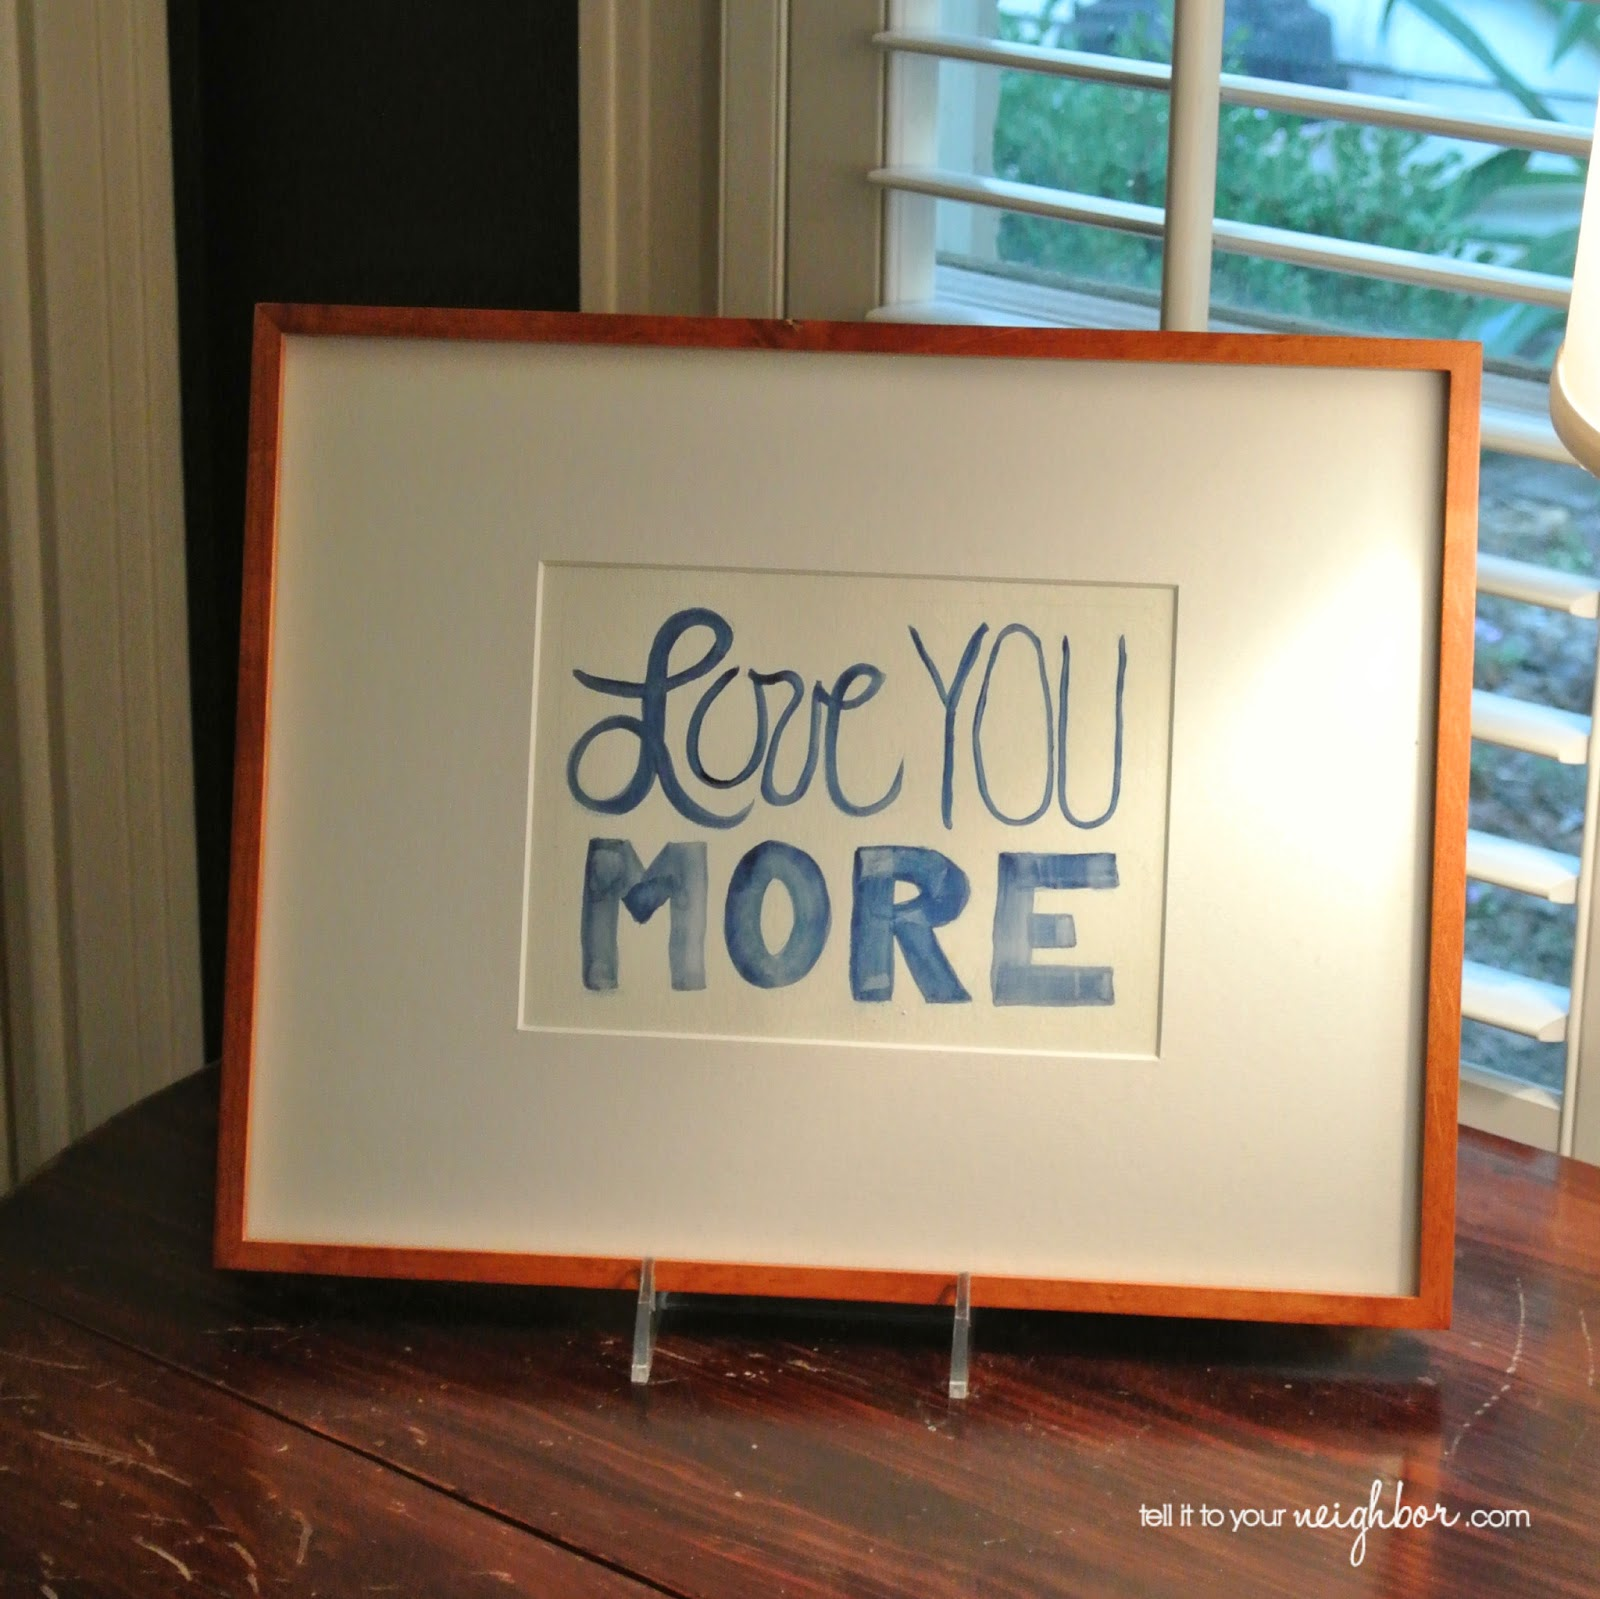 A Nice Frame Ready-To-Go - Tell it to your Neighbor